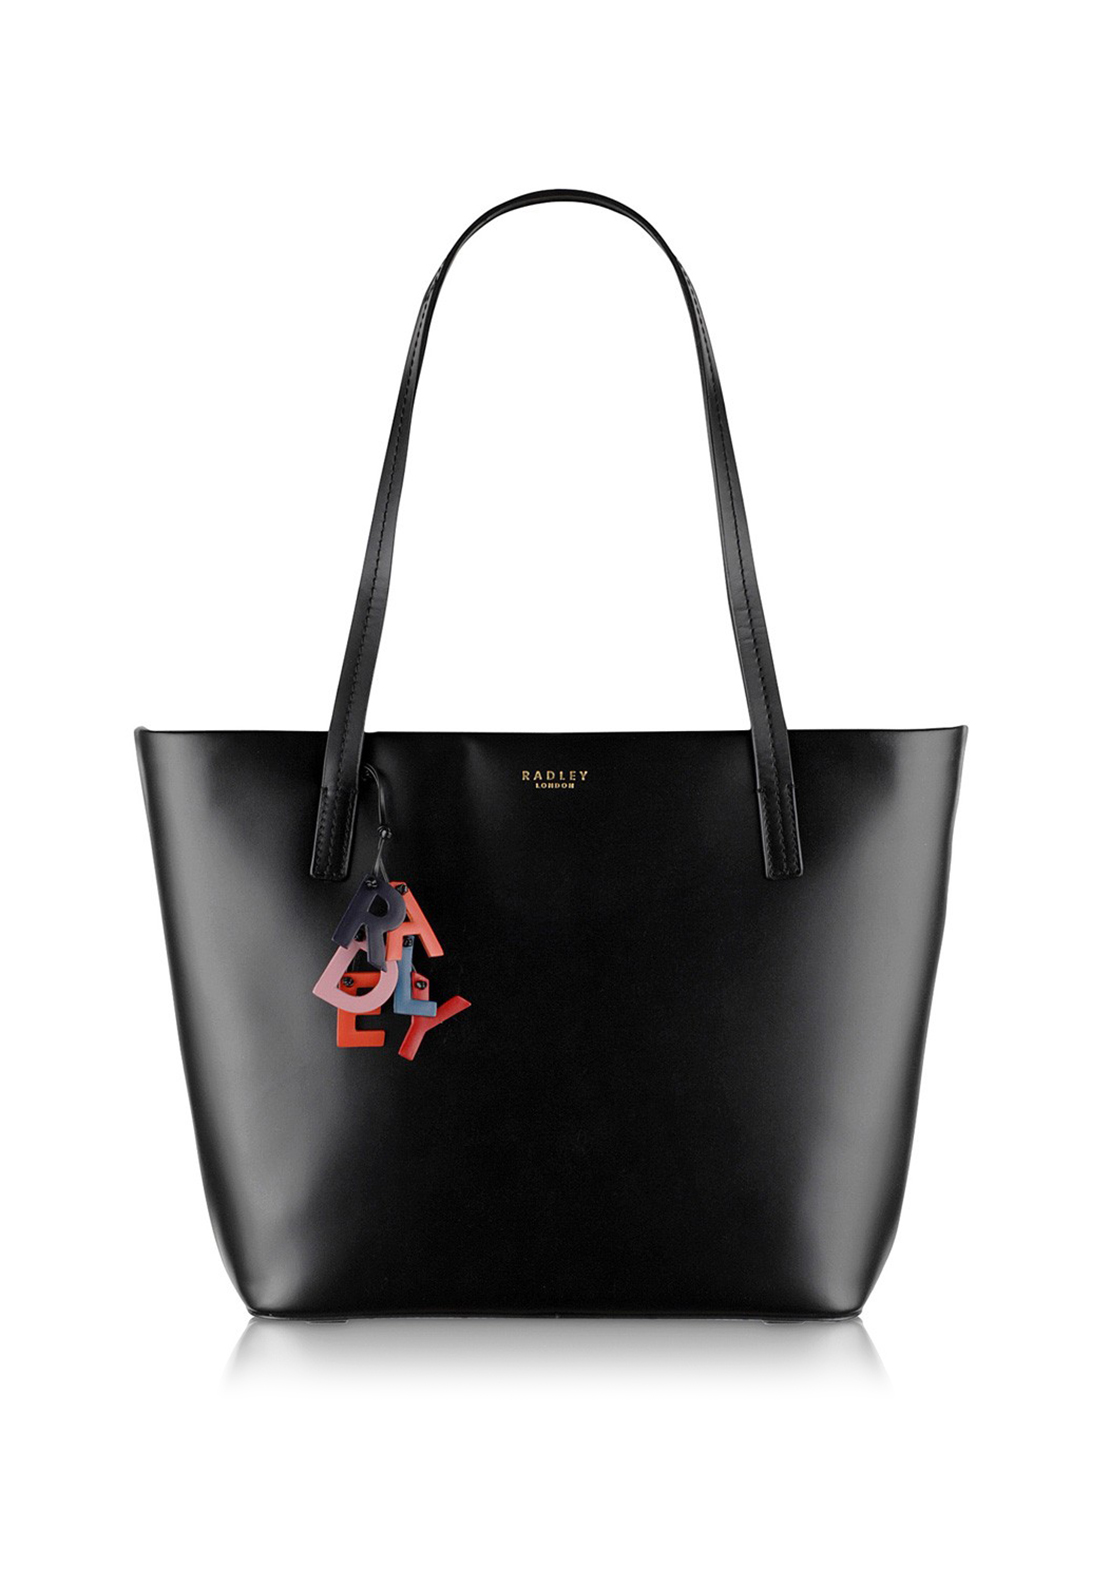 Radley Ziptop Tote Bag Black